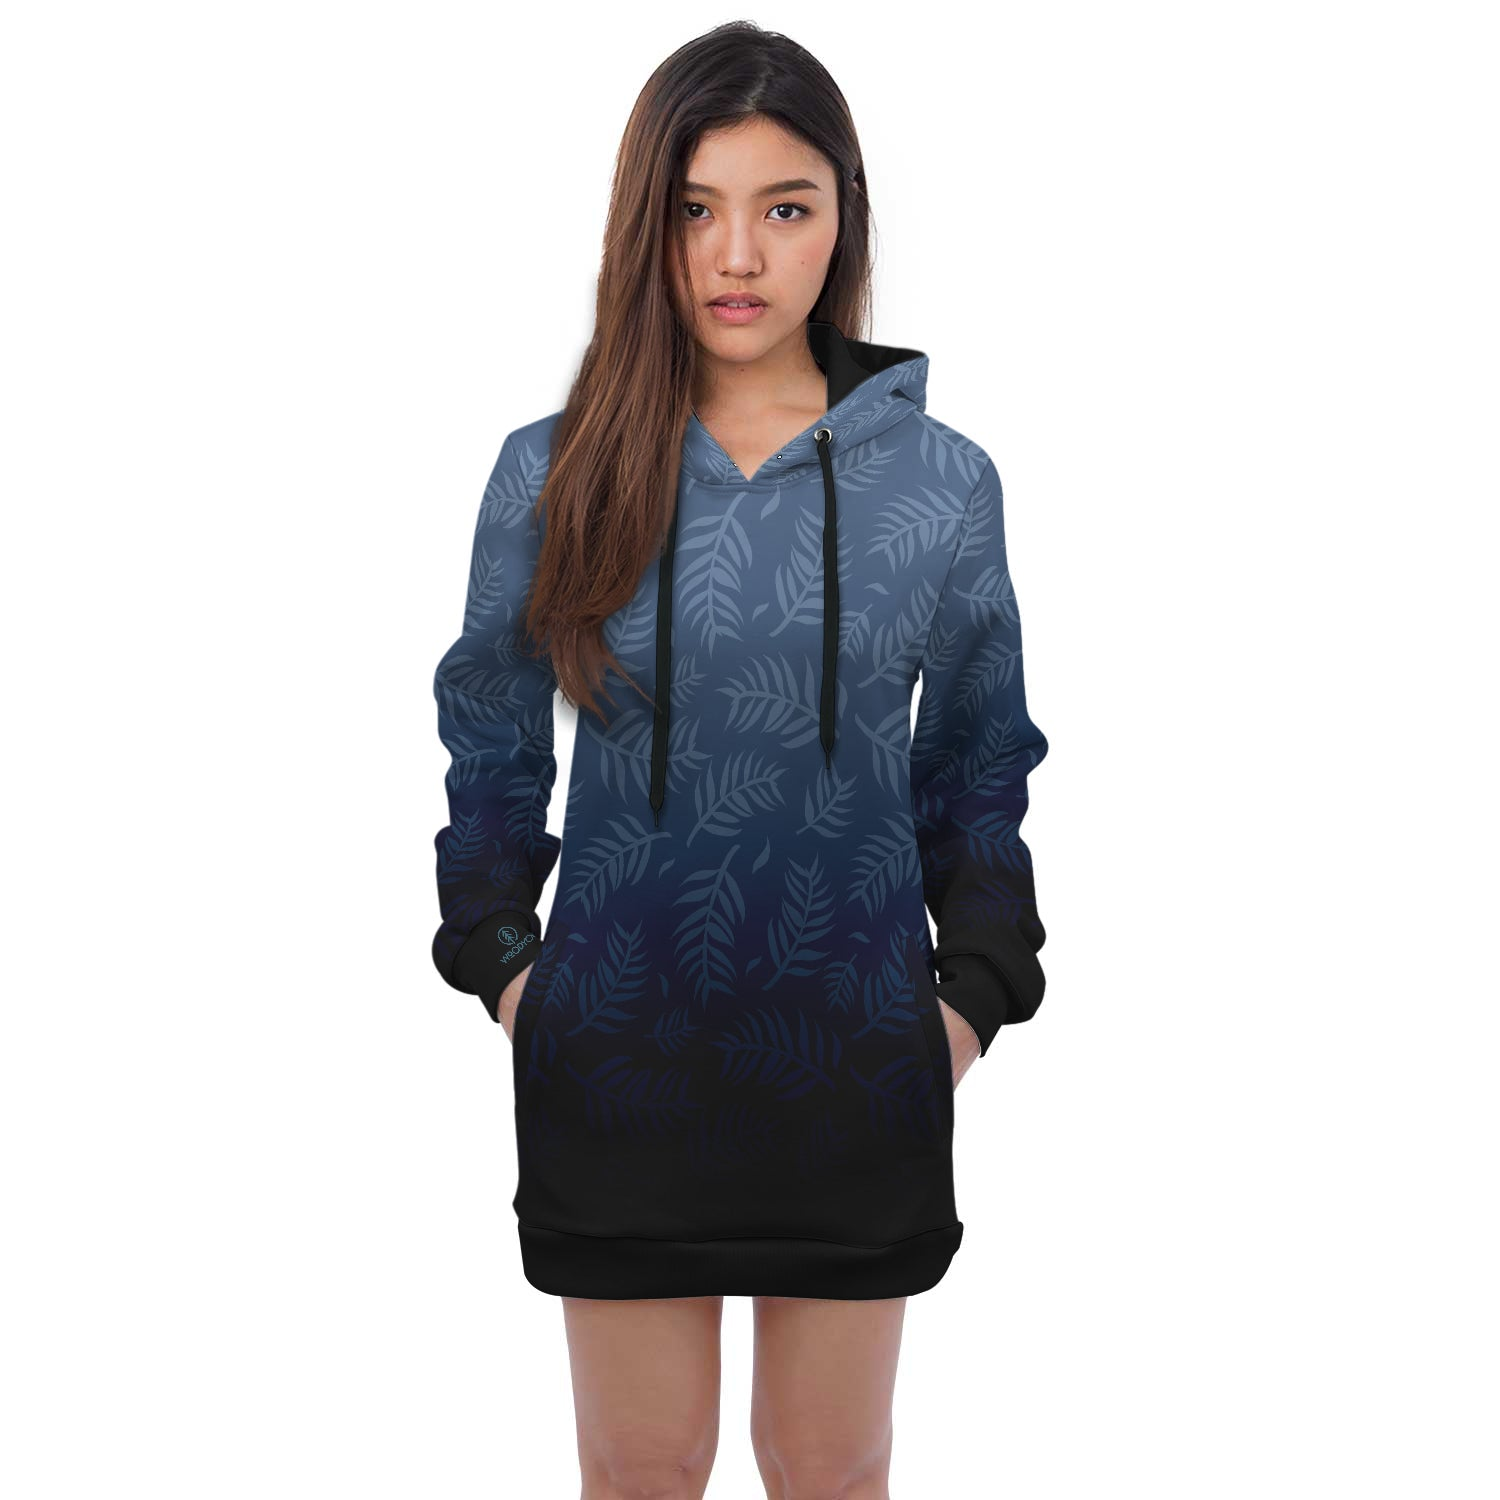 Folium- Hoodie Dress. This custom All Over Printed hoodie dress is the perfect hoodie to stay stylish and fashionable. This hoodie has a trendy style, unique print and comfortable fit.